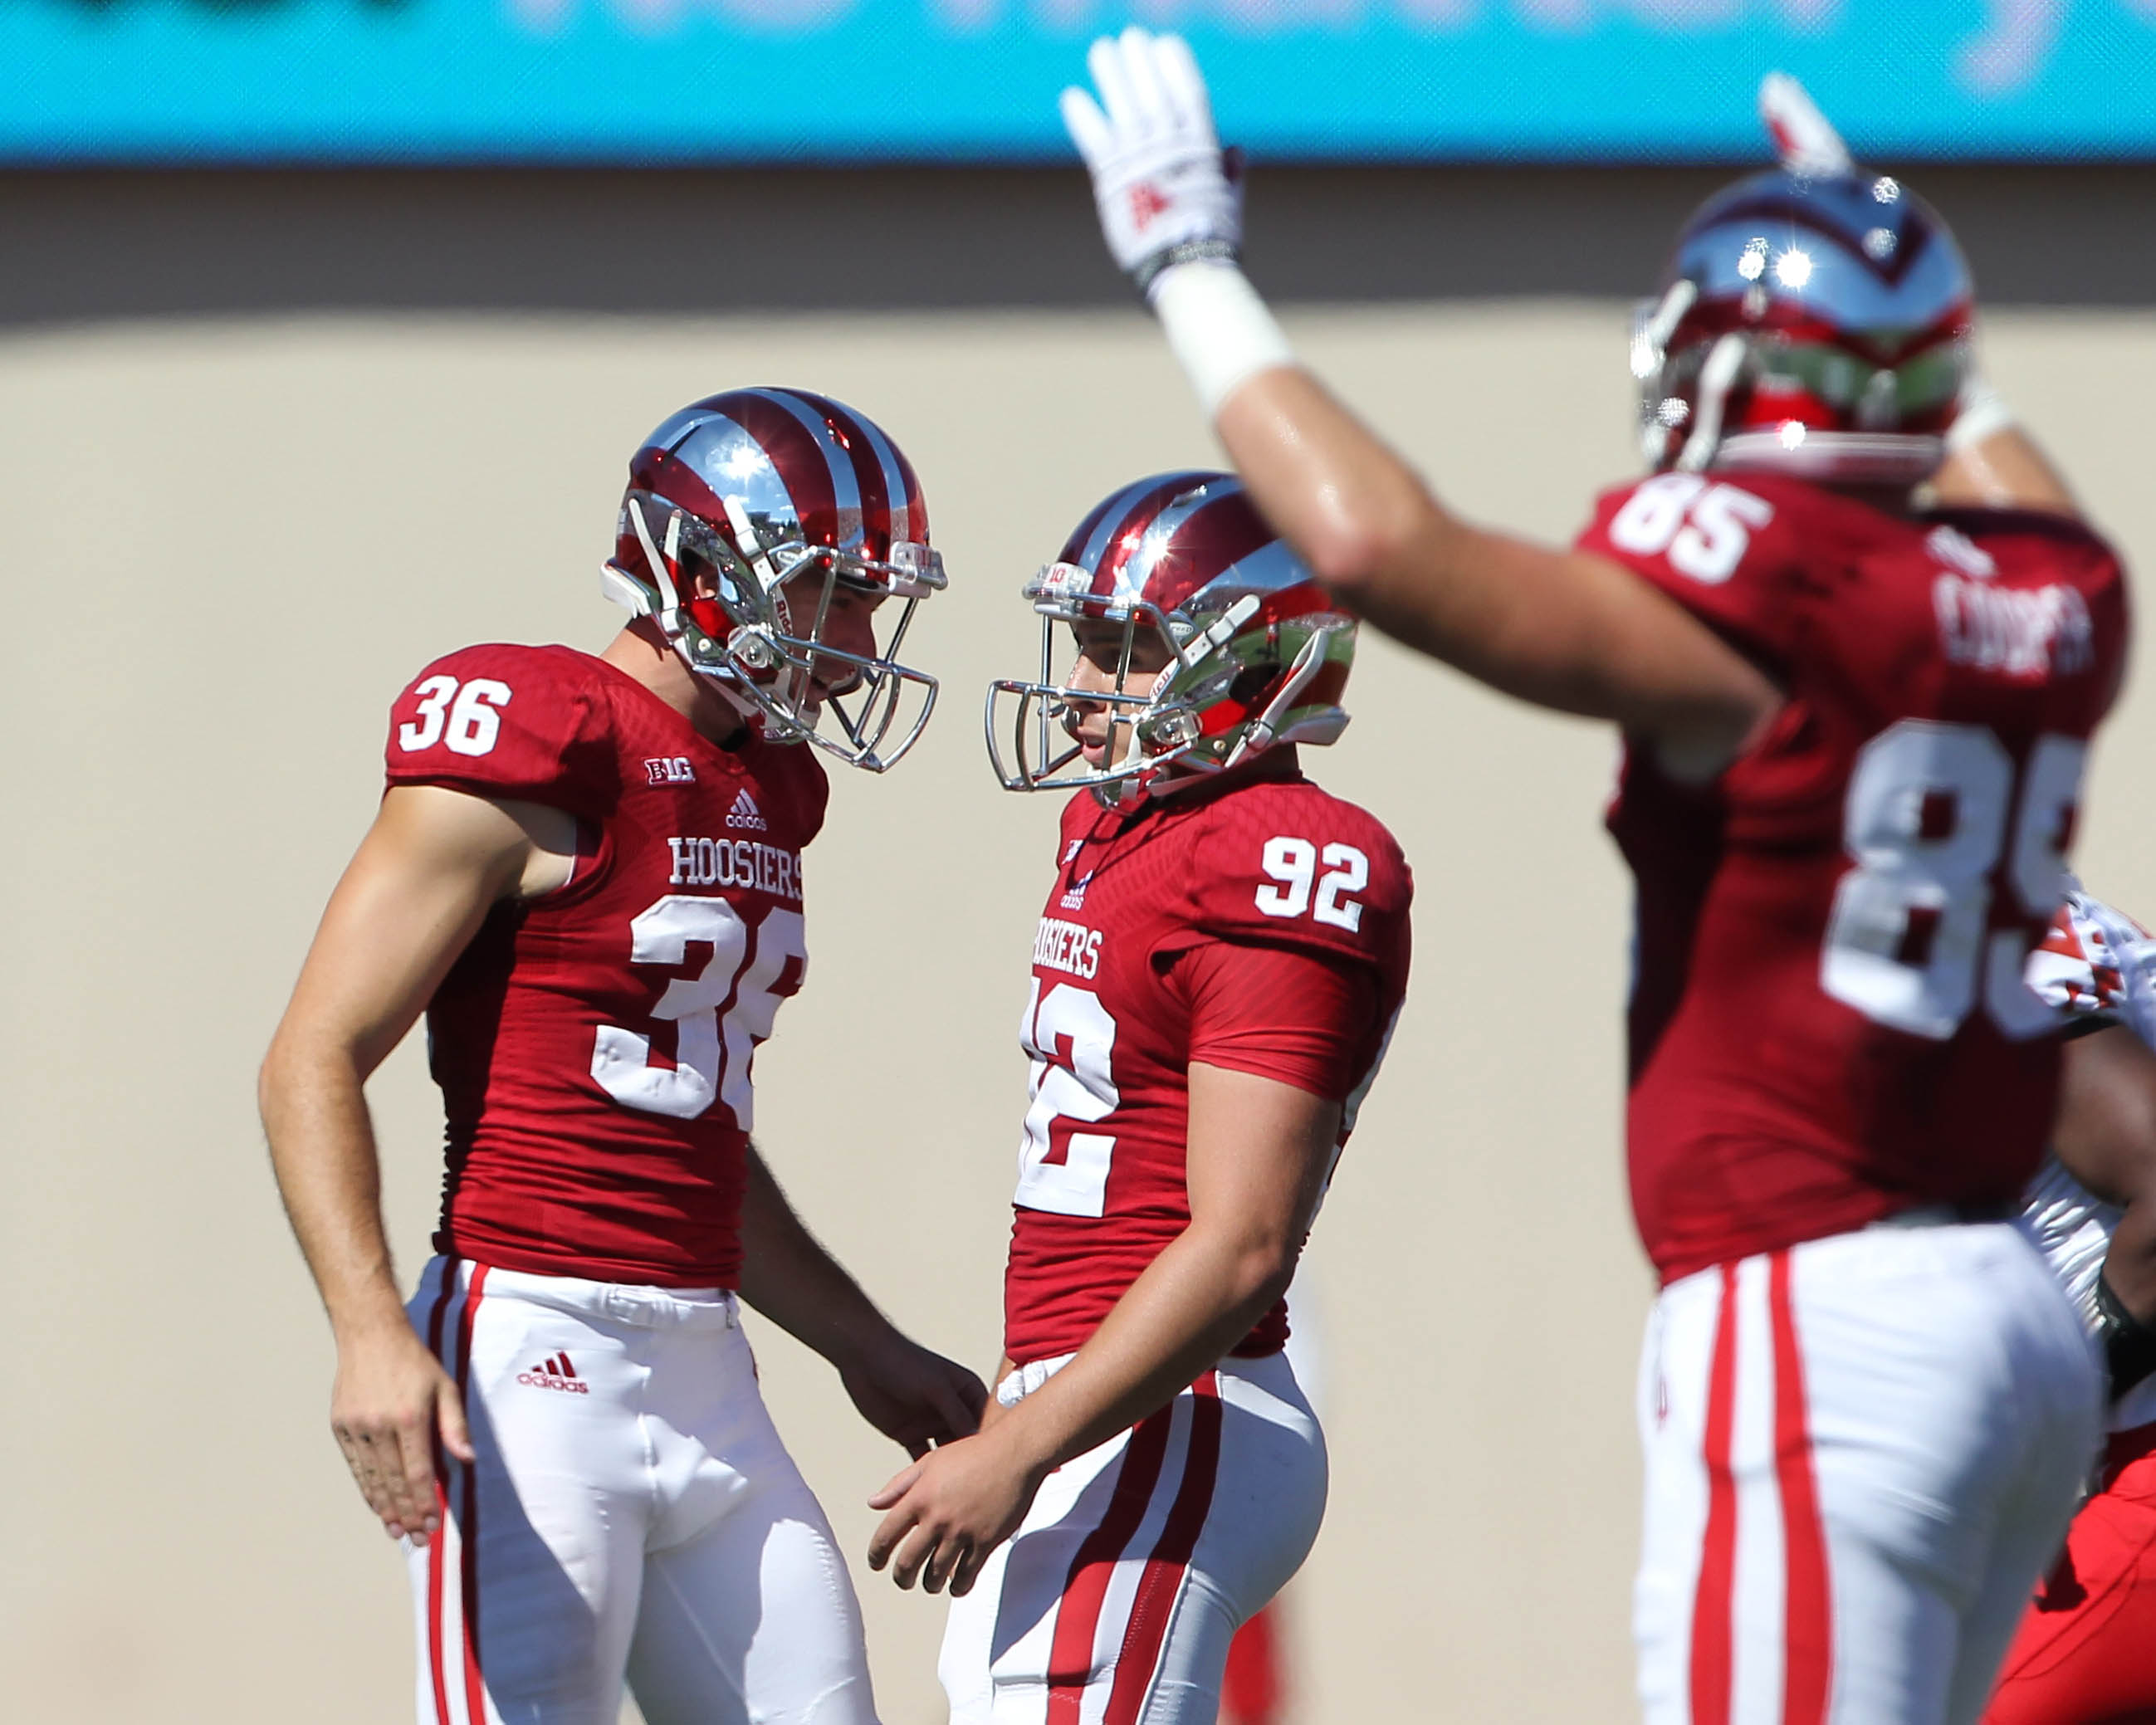 Indiana Hoosiers place kicker Griffin Oakes (92) is congratulated by punter Erich Toth (36) after making a field goal during the second quarter against the Maryland Terrapins at Memorial Stadium. (Pat Lovell-USA TODAY Sports)